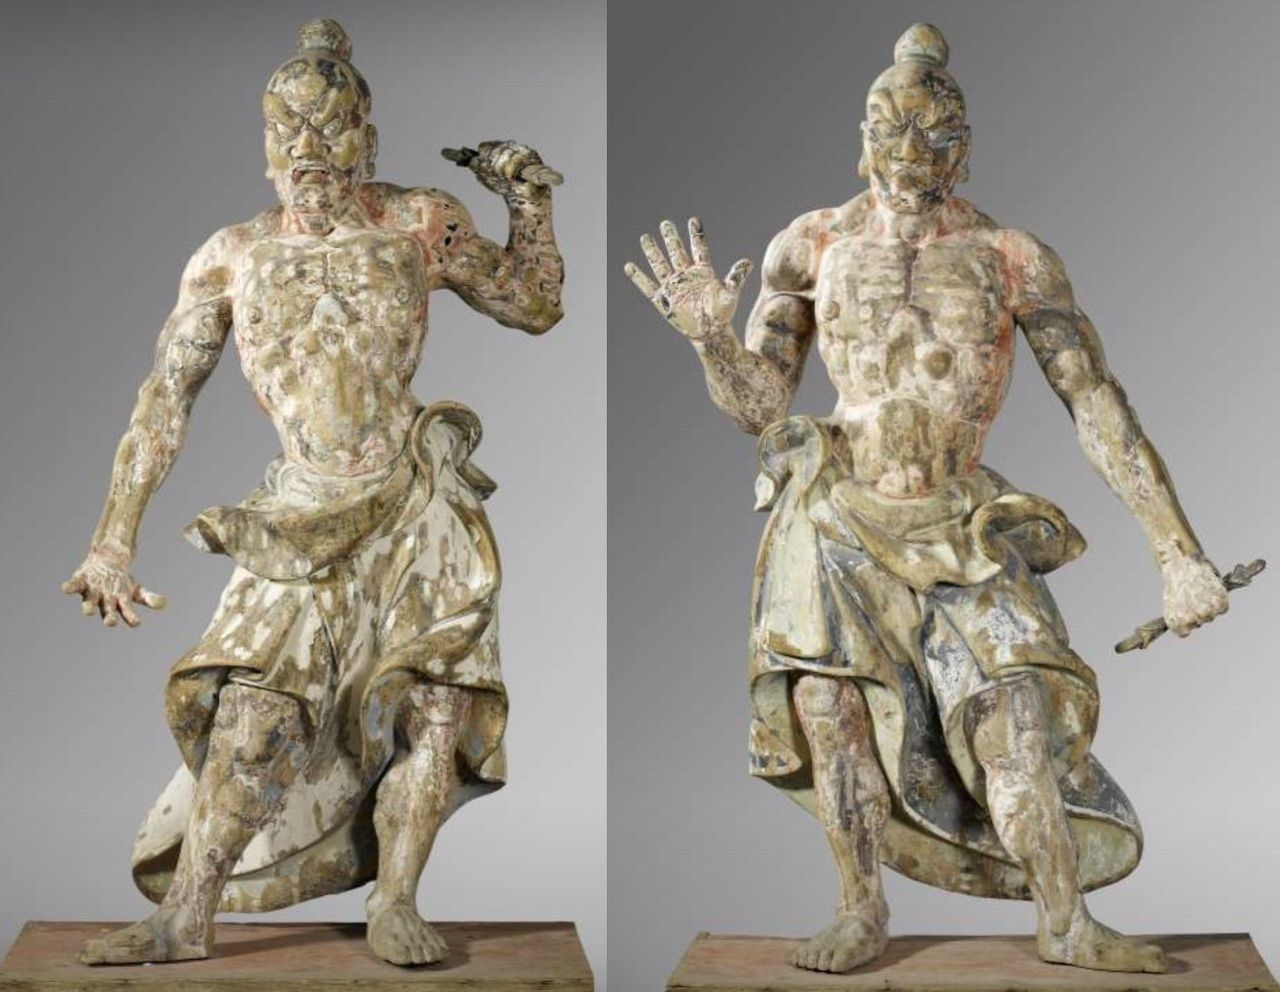 One-day-guide-to-the-Rijksmuseum-japanese-temple-guardians